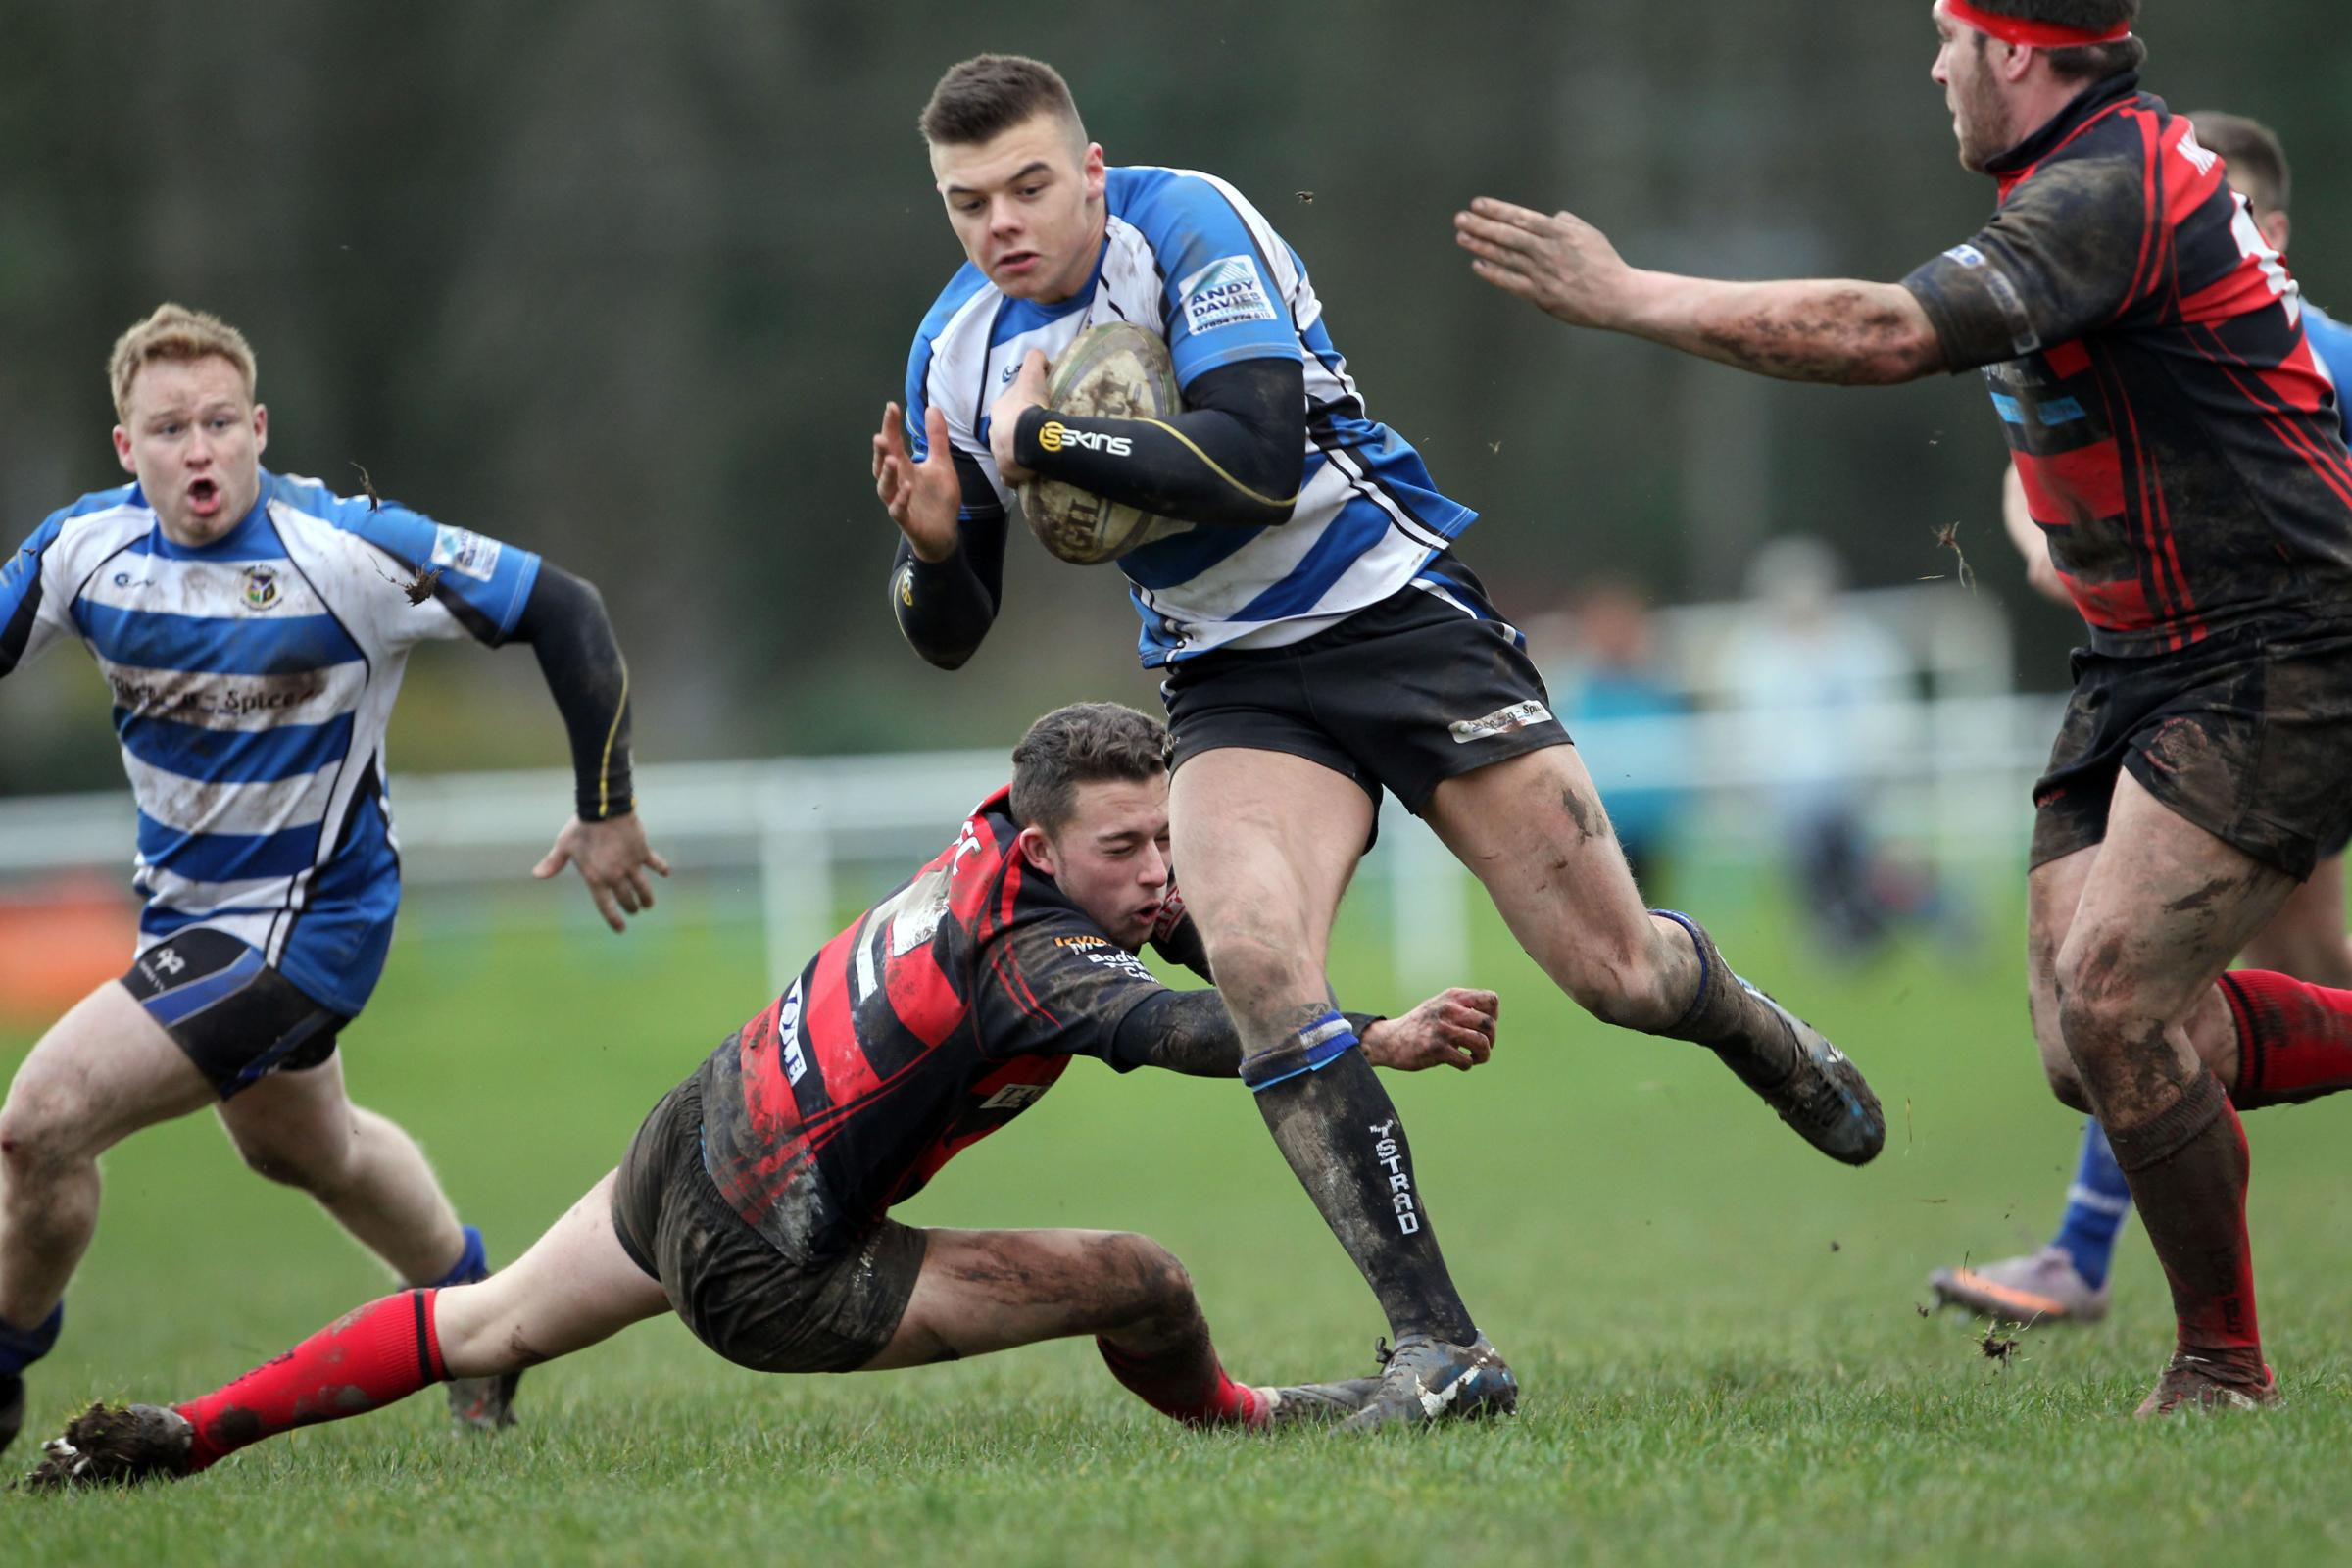 WINNING CHARGE: Kylum Austin breaks out to score Ystrad's winning try. Pic: Rileysportsphotography.com